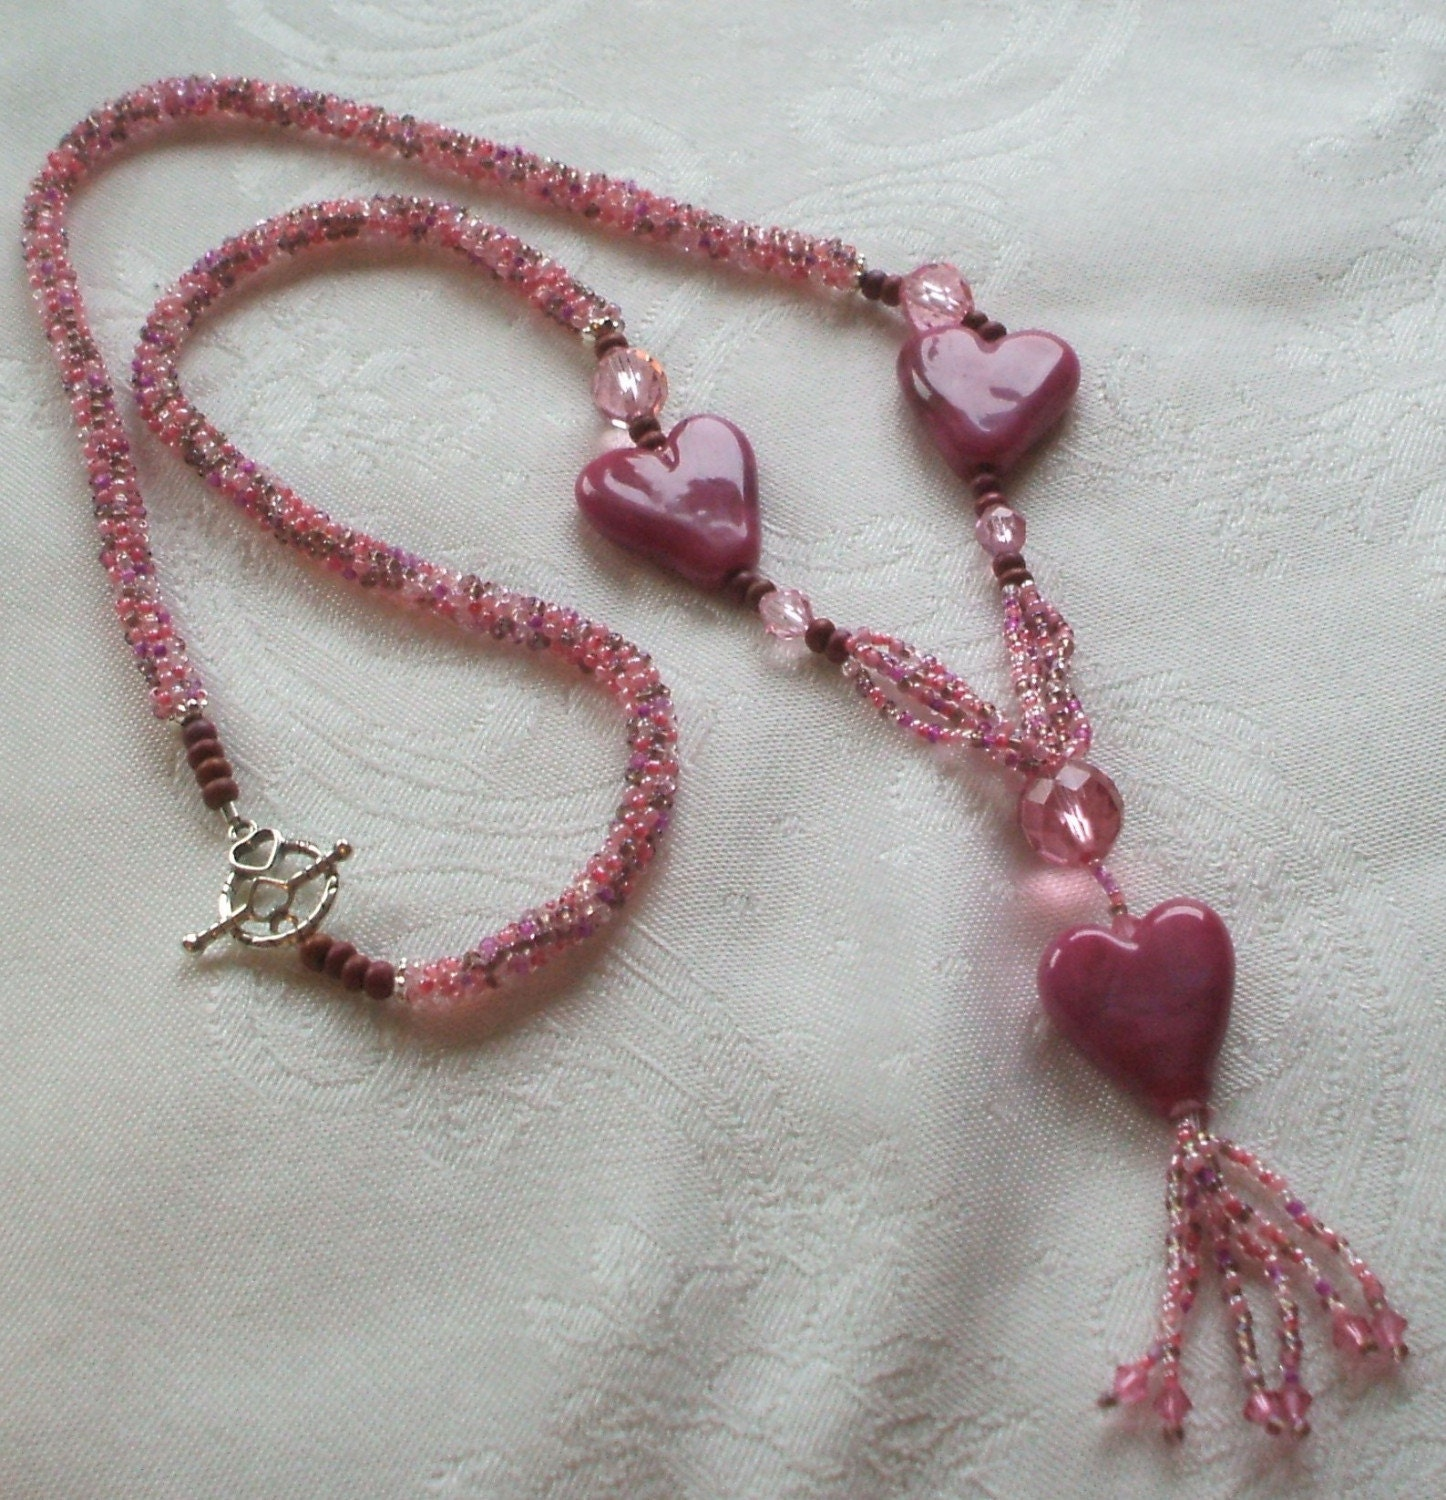 Here's My Heart Lampwork and Beadwoven Necklace